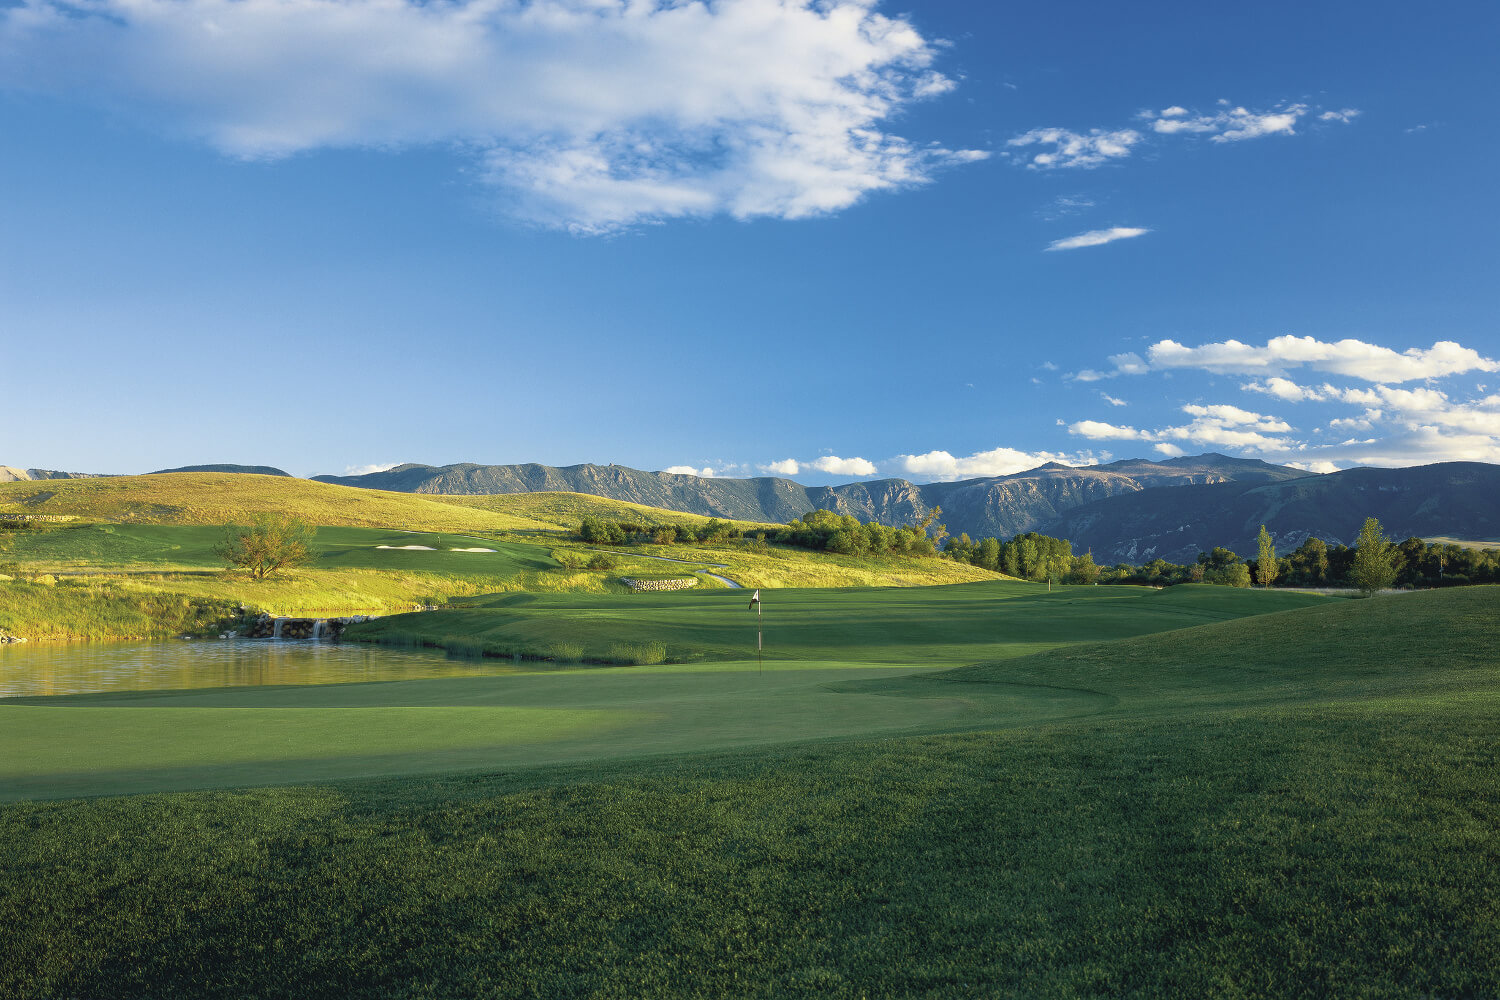 The Powder Horn Ranked in the Top 100 U.S. Residential Golf Courses by Golfweek Magazine